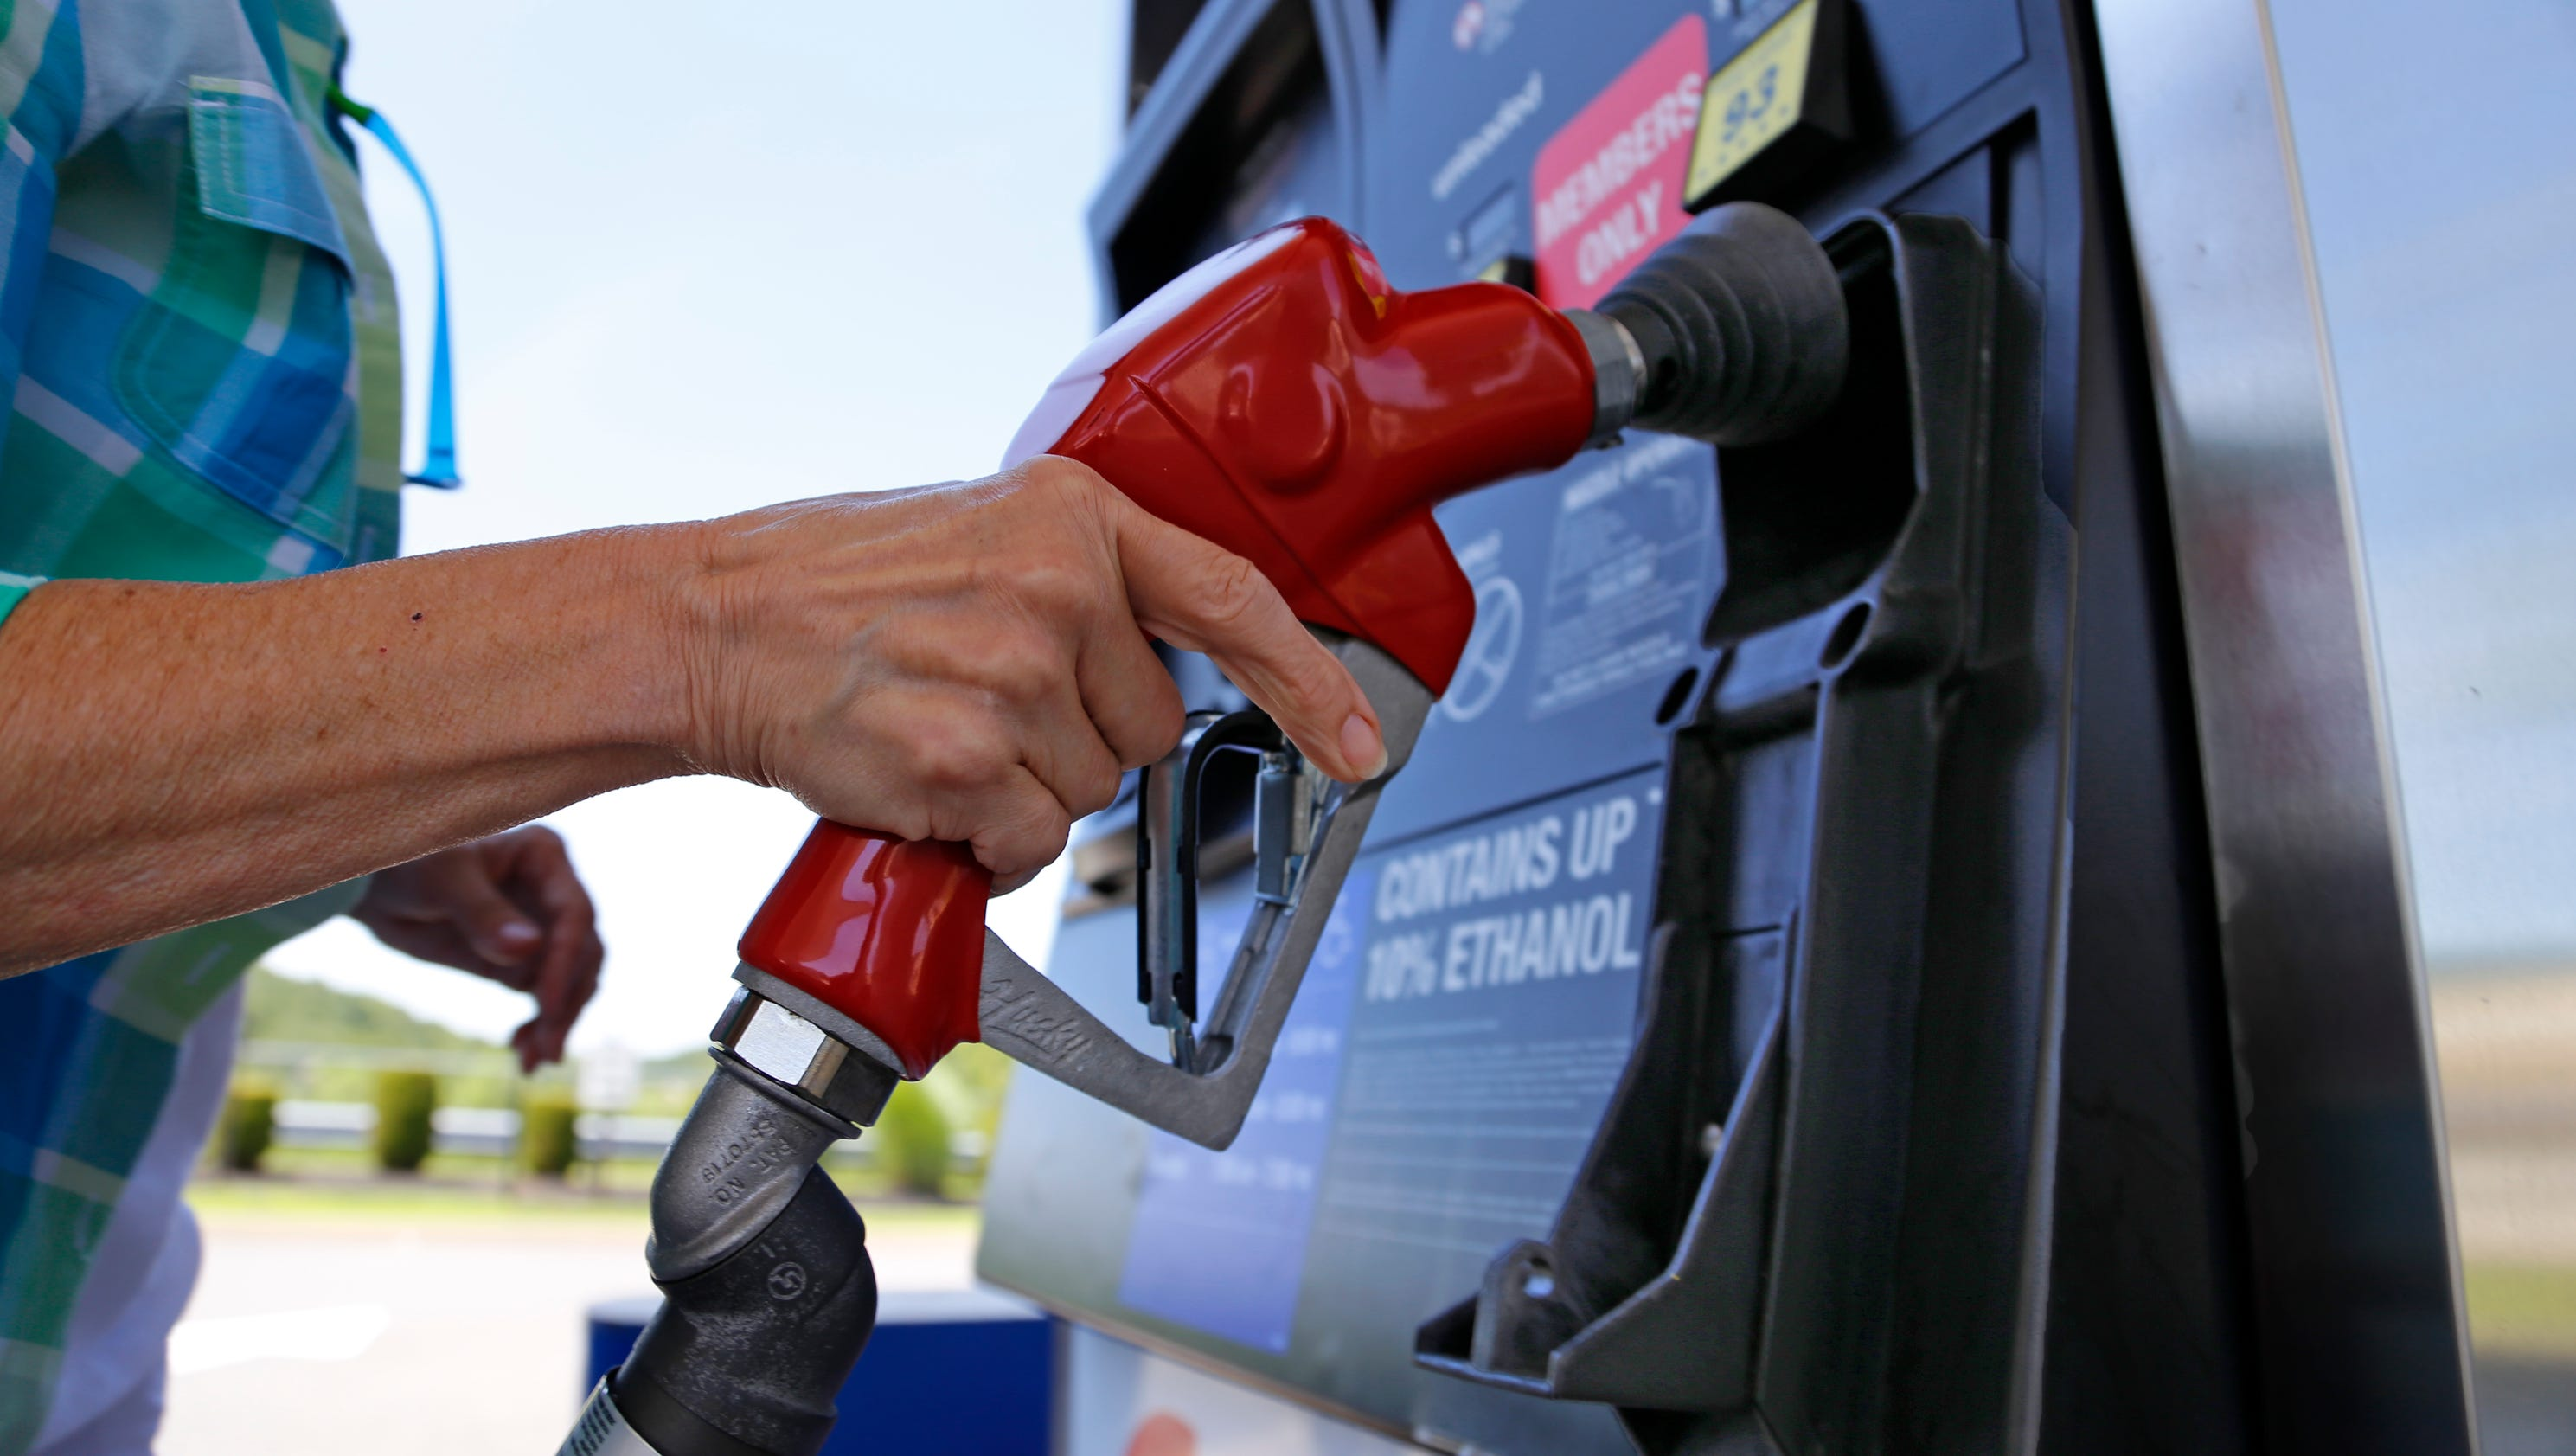 More US drilling didn't drop gas price - CBS News